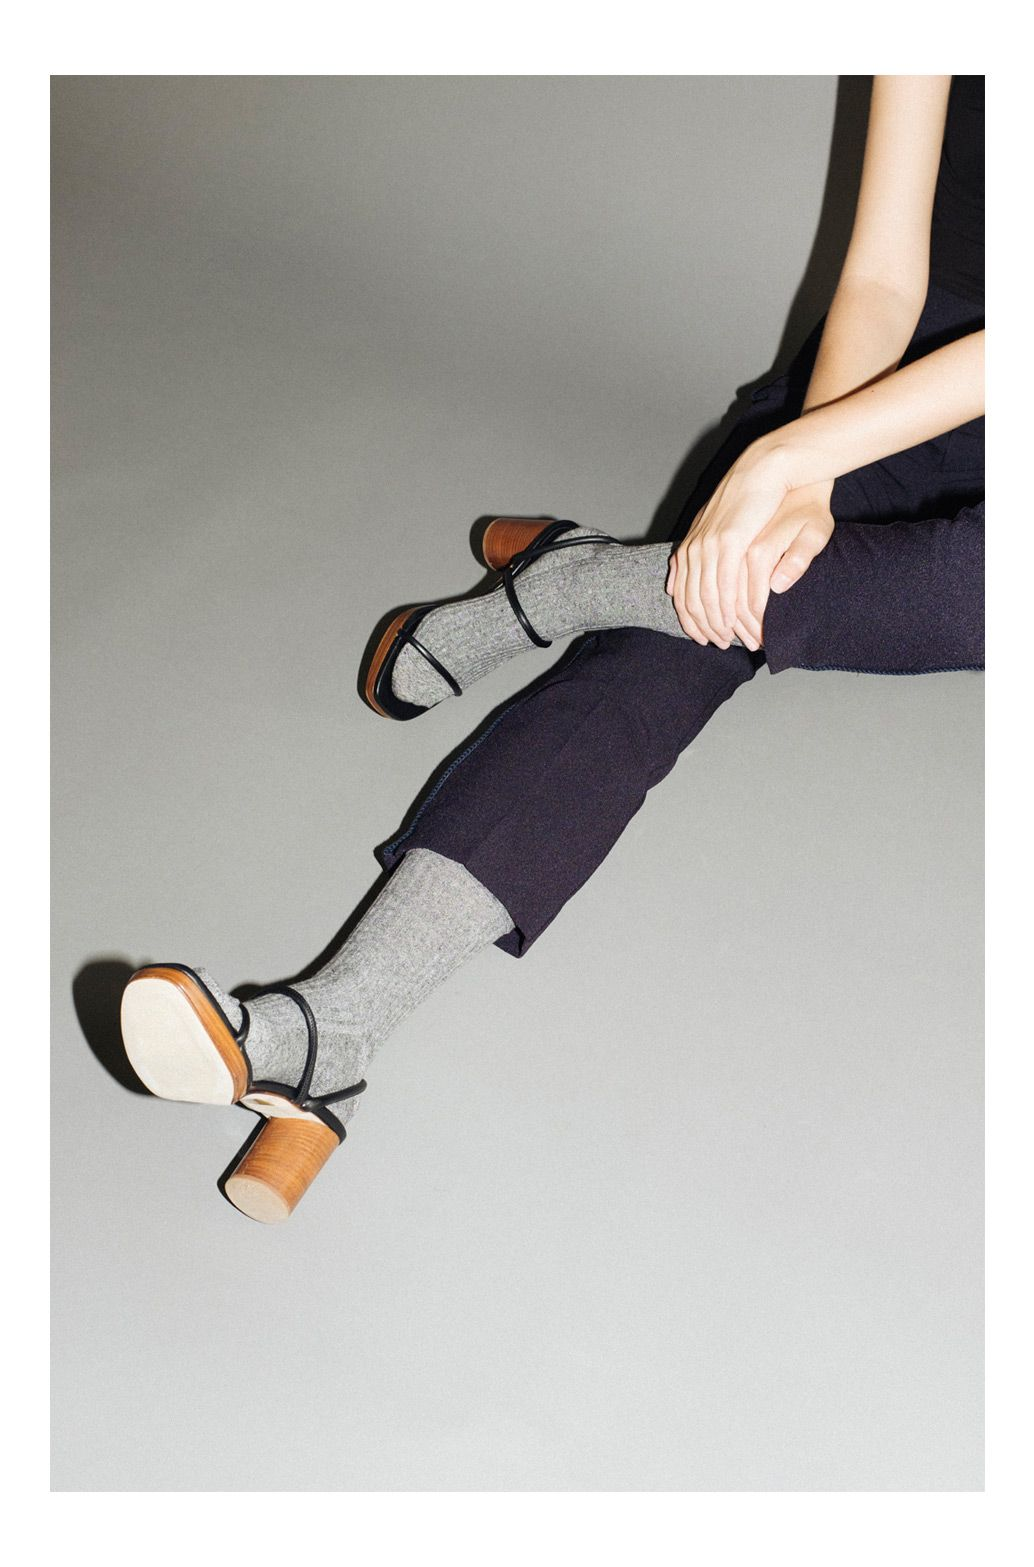 Tread lightly. A touch of subtle luxury in the form of mesh and cashmere socks. Pair with statement sandals from Creatures of Comfort, Maryam Nassir Zadeh and Robert Clergerie to ease the